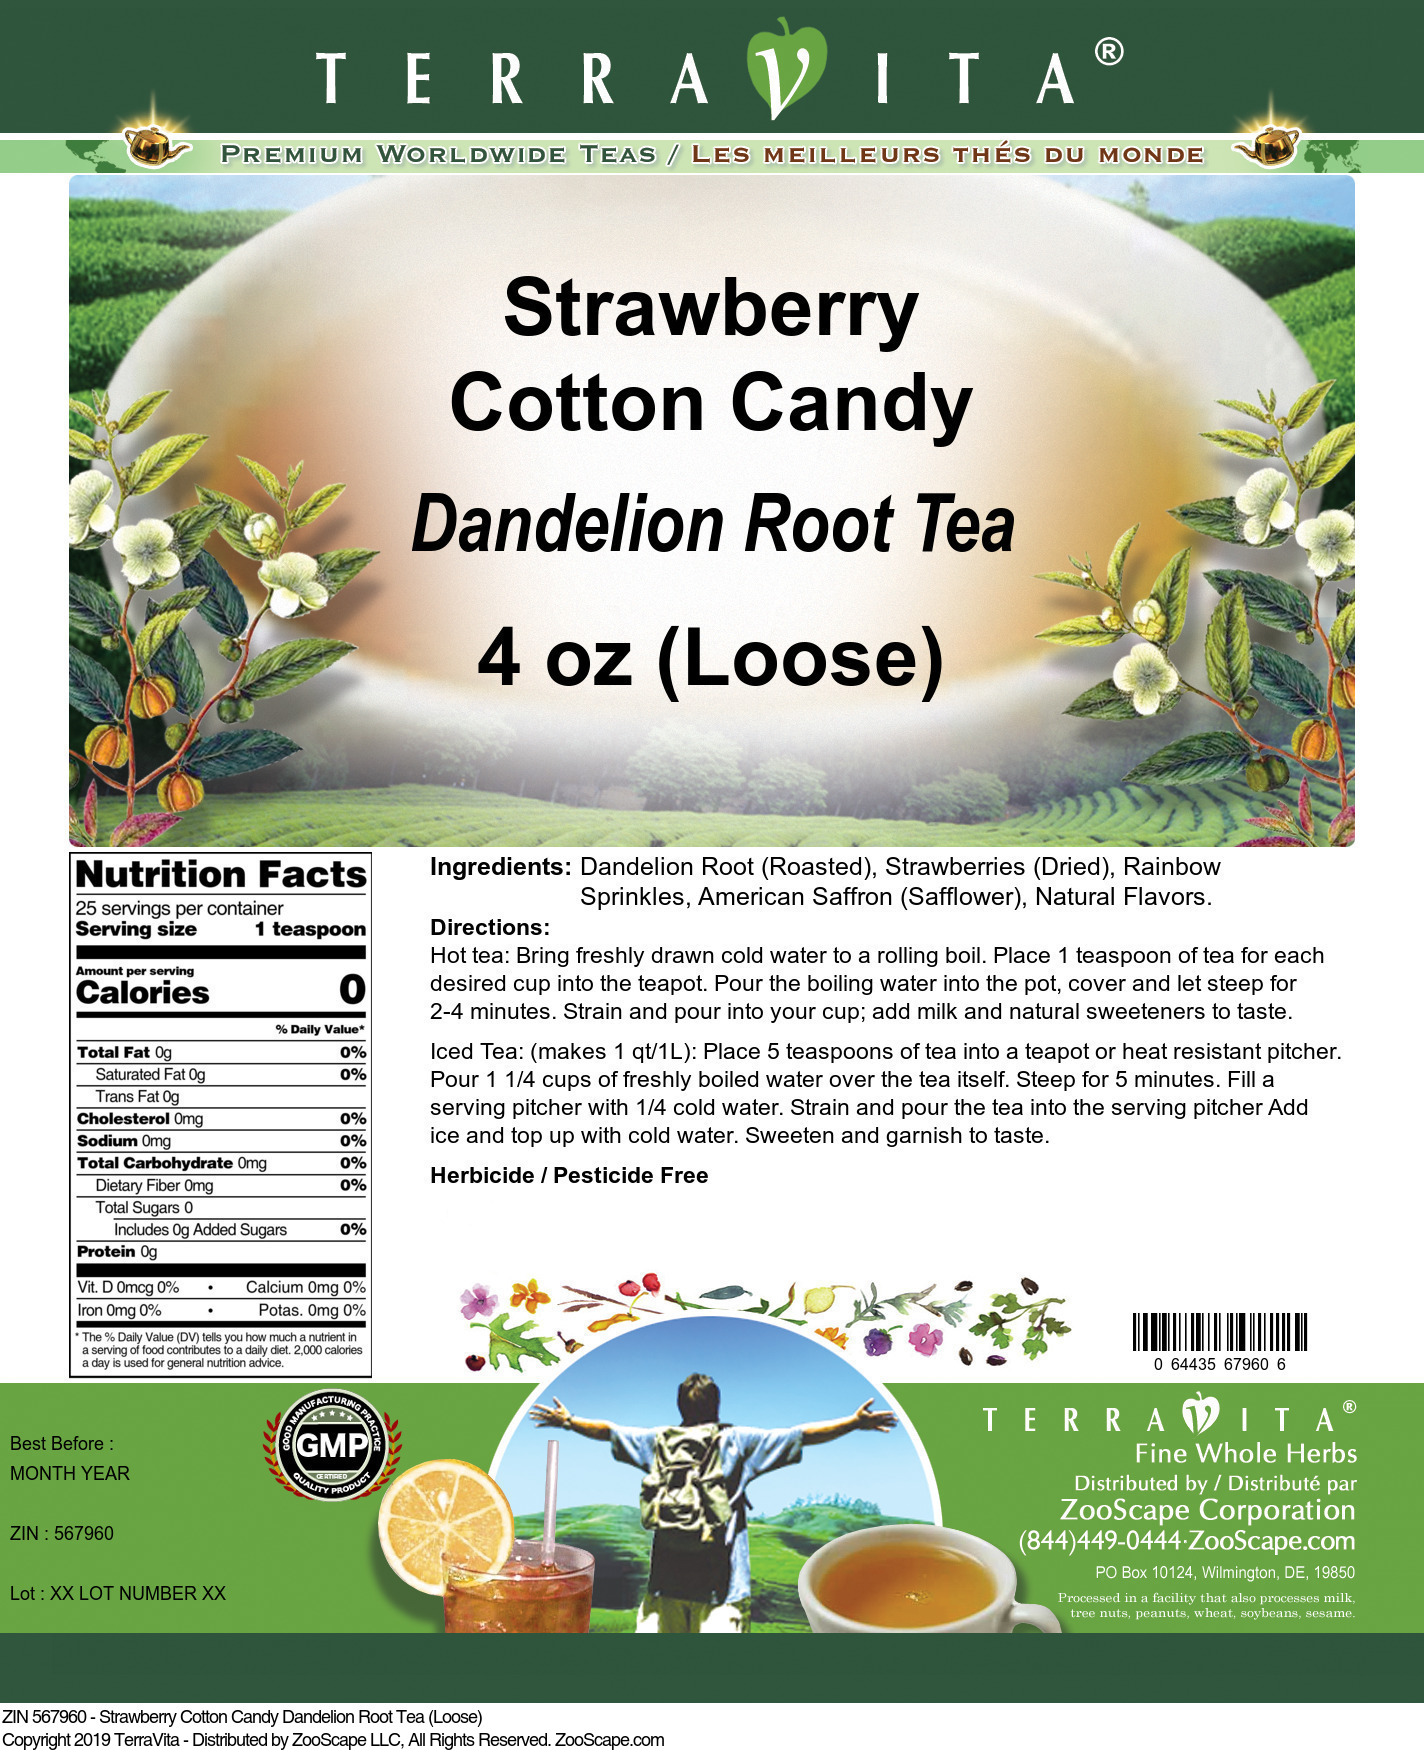 Strawberry Cotton Candy Dandelion Root Tea (Loose)